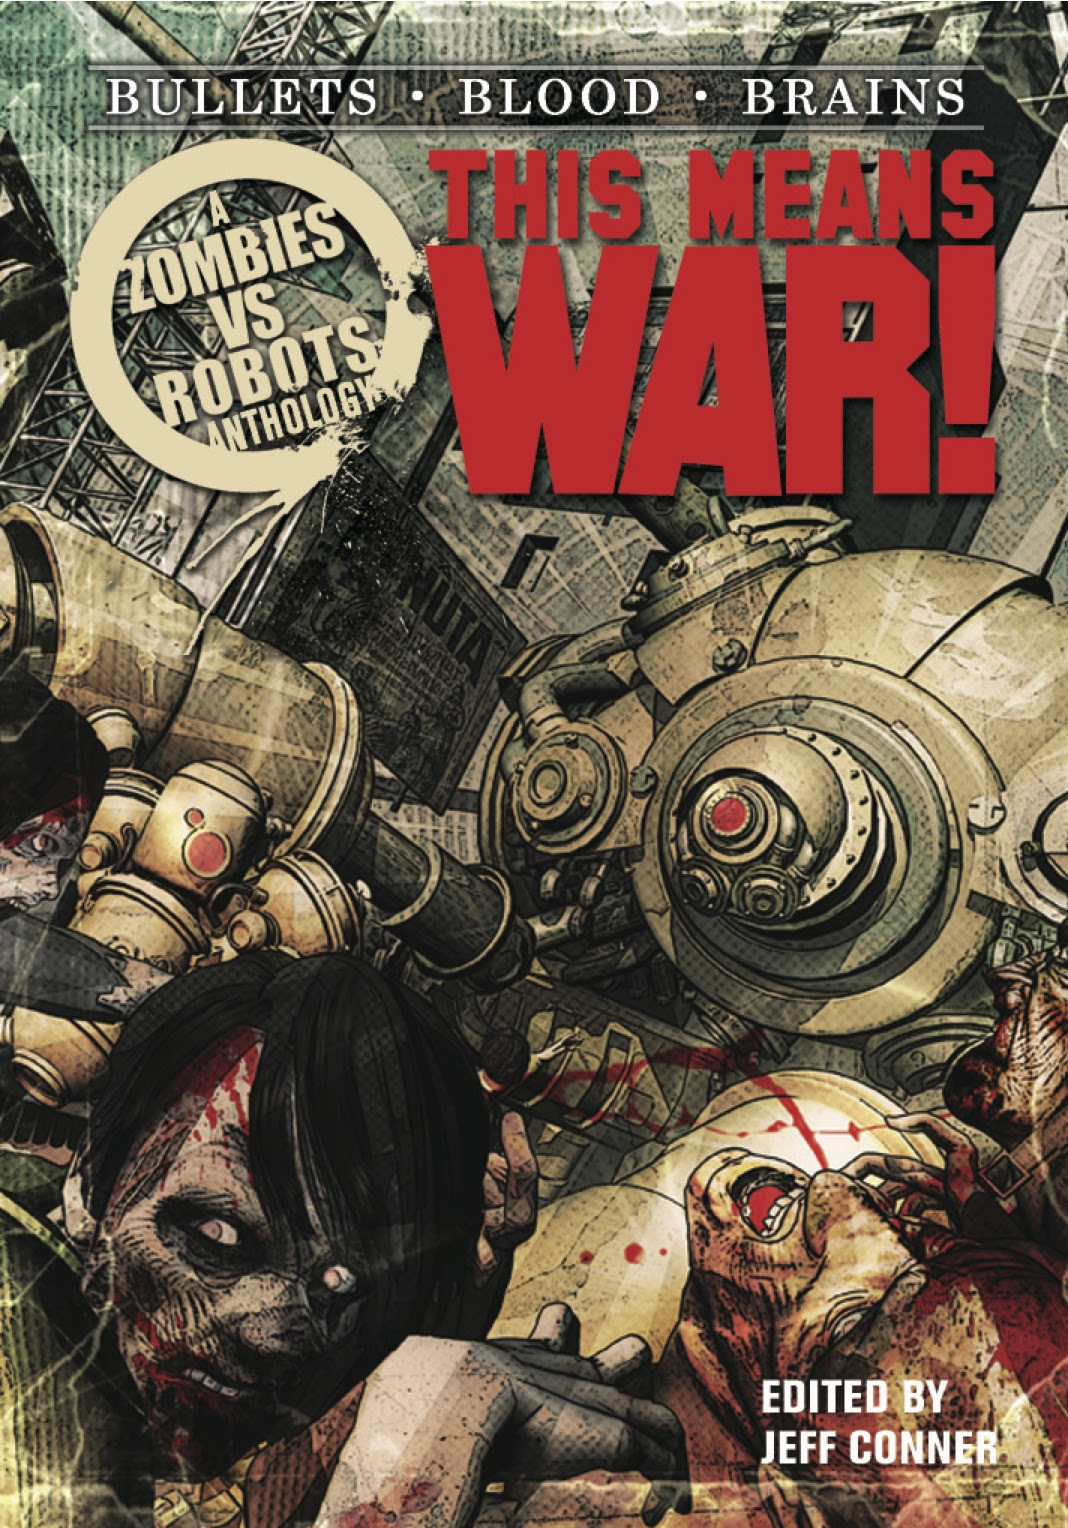 [Zombies vs Robots This Means War Image]